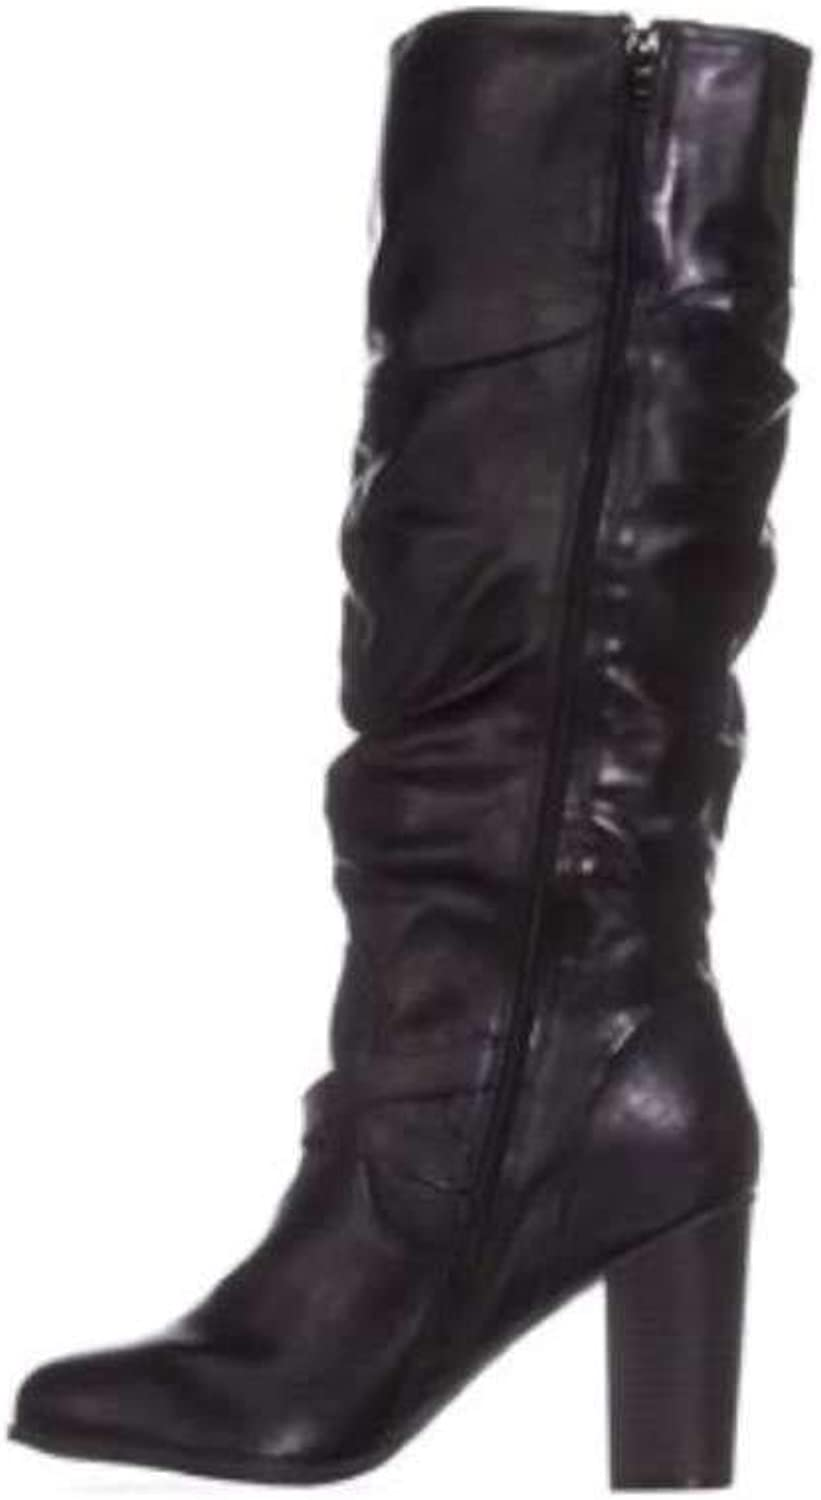 Style & Co. Womens Sophiie Closed Toe Knee High Fashion Boots, Black, Size 5.5